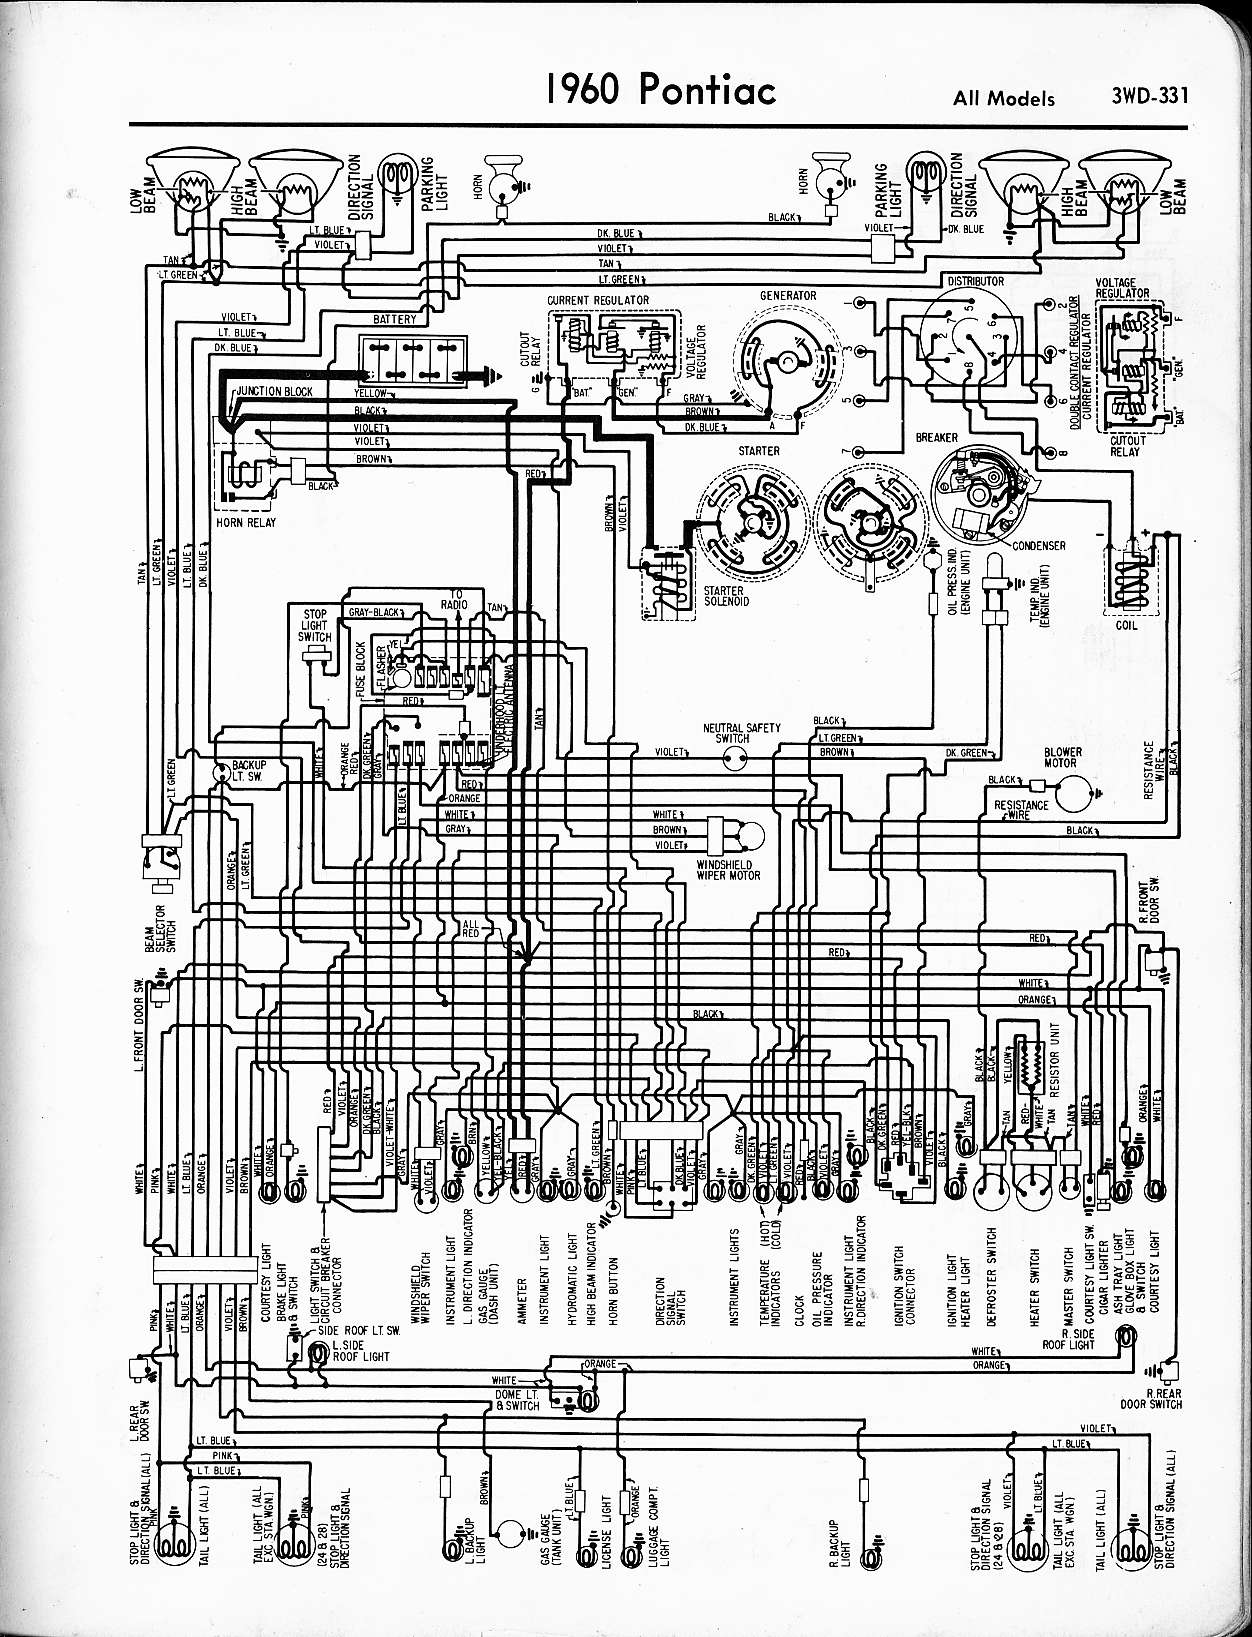 wallace racing wiring diagrams rh wallaceracing com 1966 pontiac bonneville wiring diagram 2000 bonneville wiring diagram